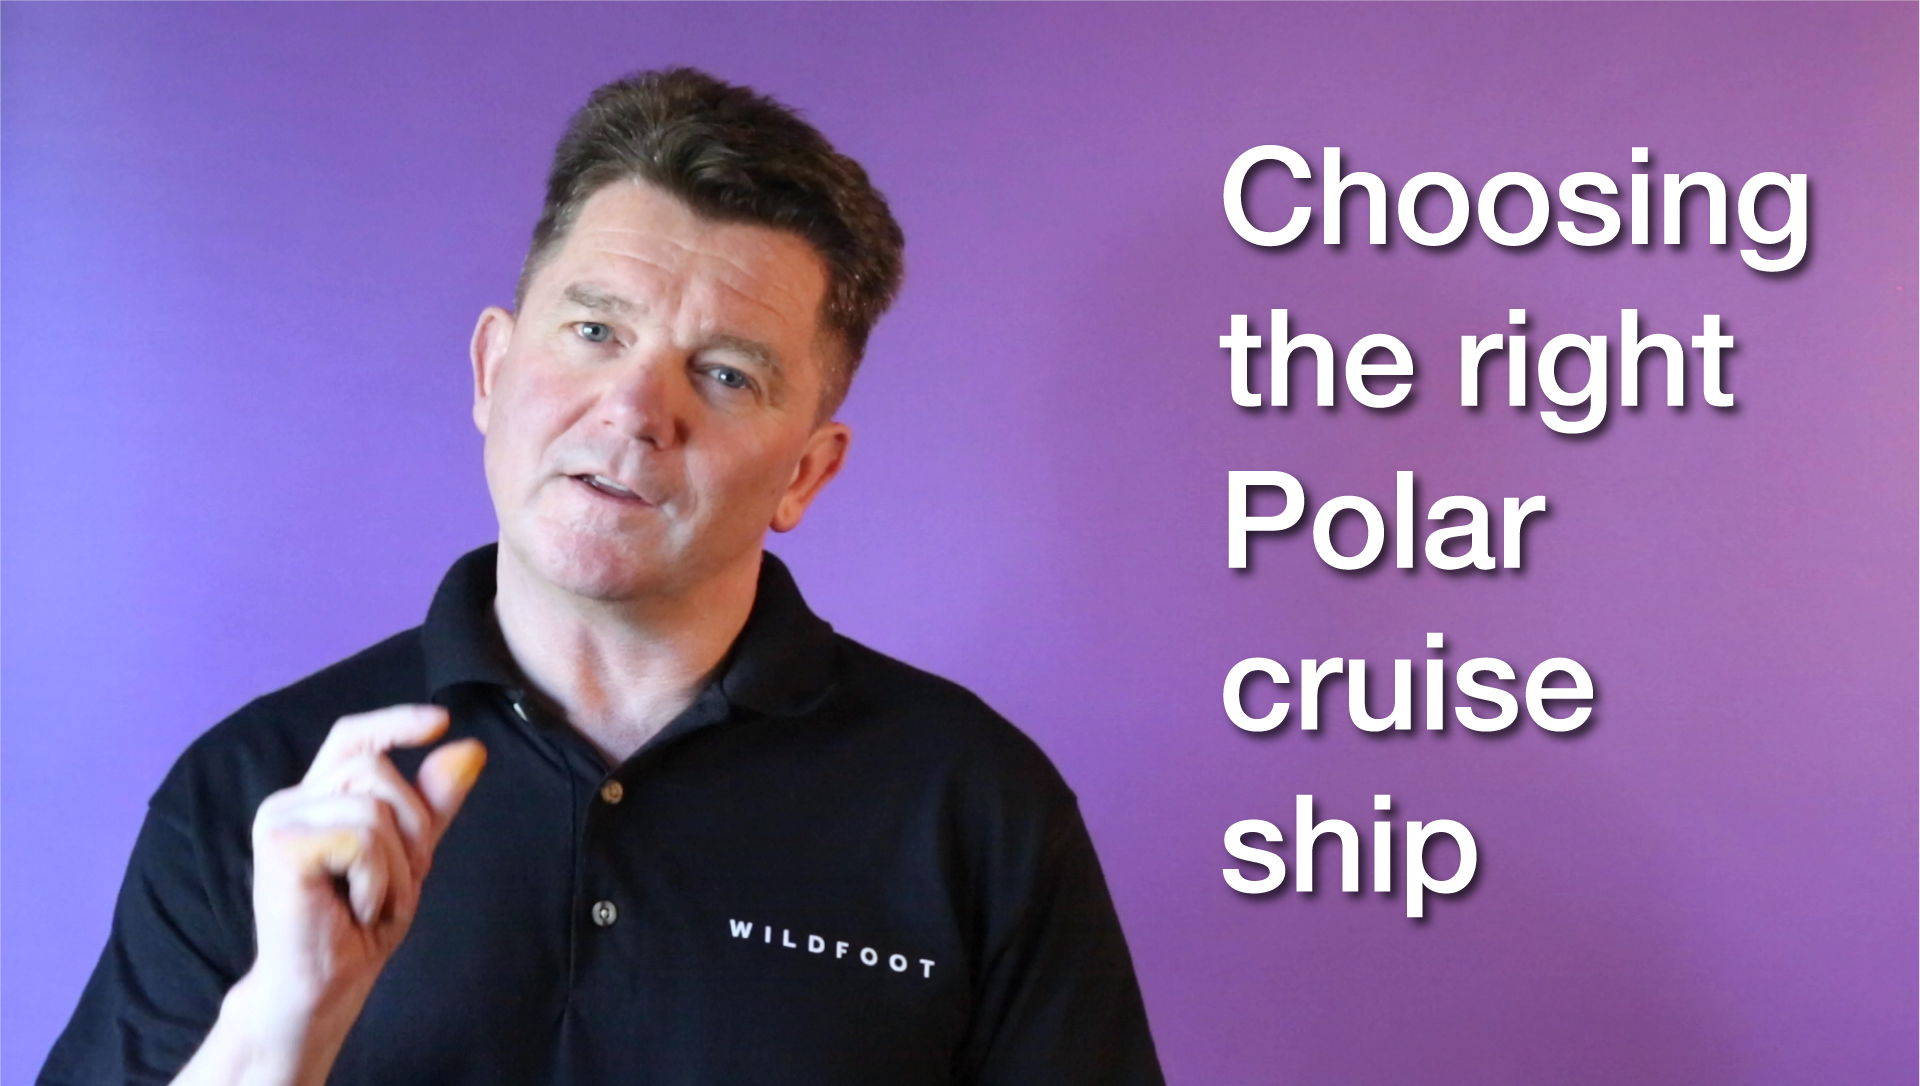 Choose a polar cruise ship